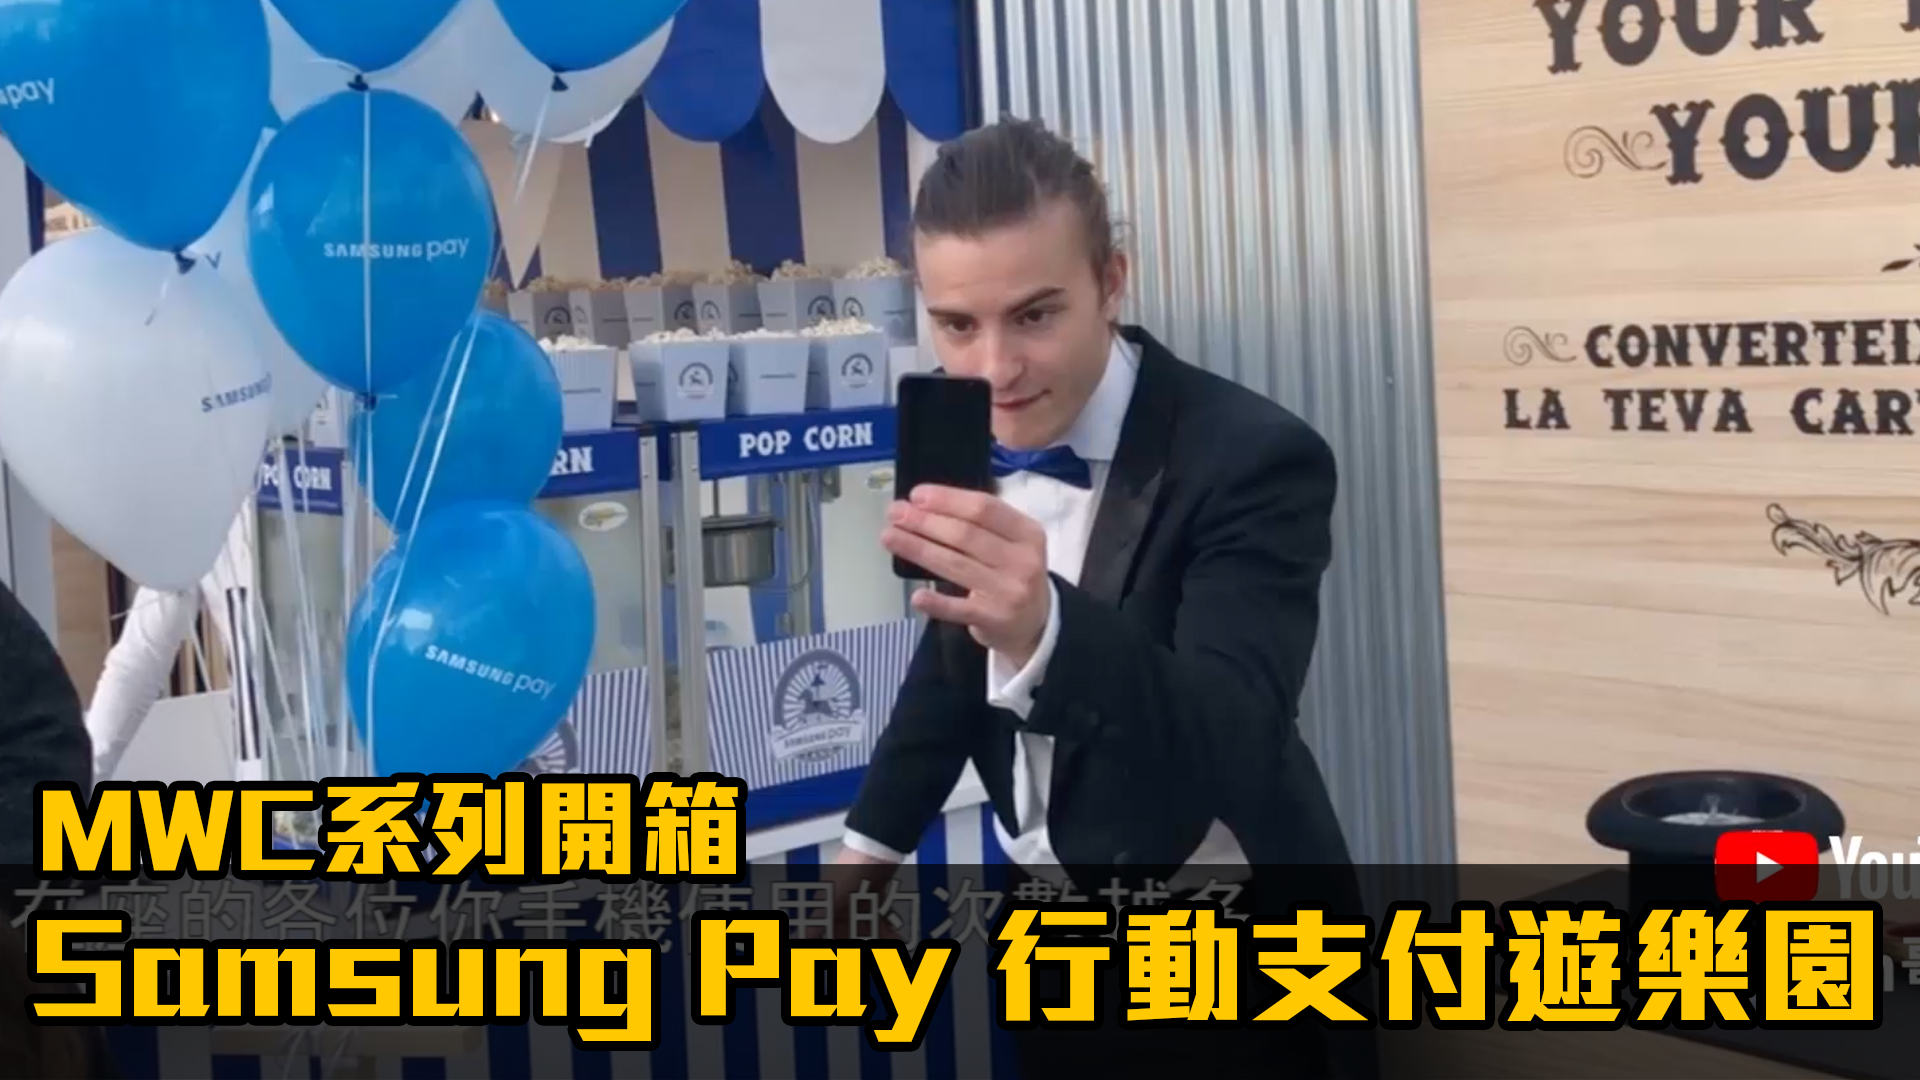 【MWC開箱直擊】Samsung Pay 行動支付體驗遊樂園